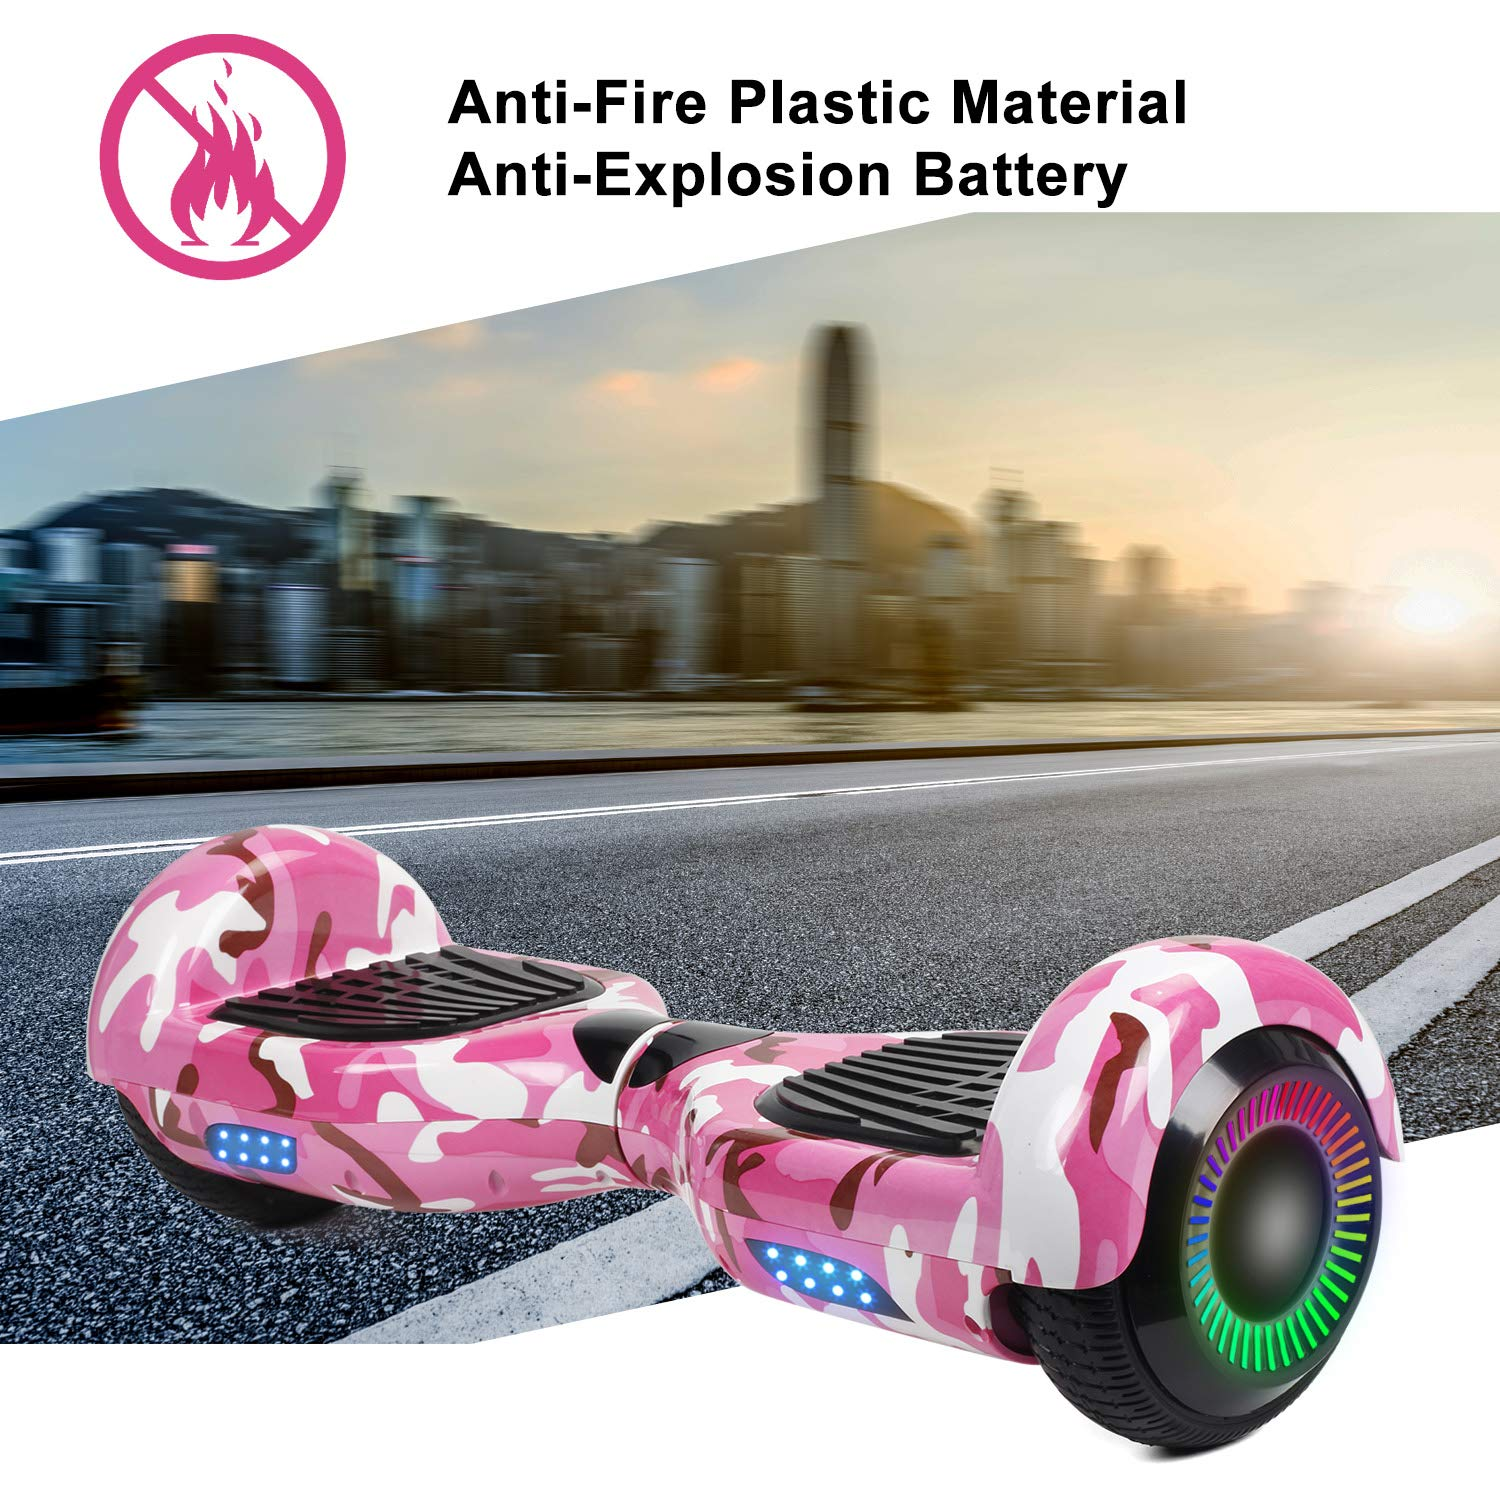 SISIGAD Hoverboard Self Balancing Scooter 6.5'' Two-Wheel Self Balancing Hoverboard with LED Lights Electric Scooter for Adult Kids Gift UL 2272 Certified Fun Edition - Pink Camou by SISIGAD (Image #5)